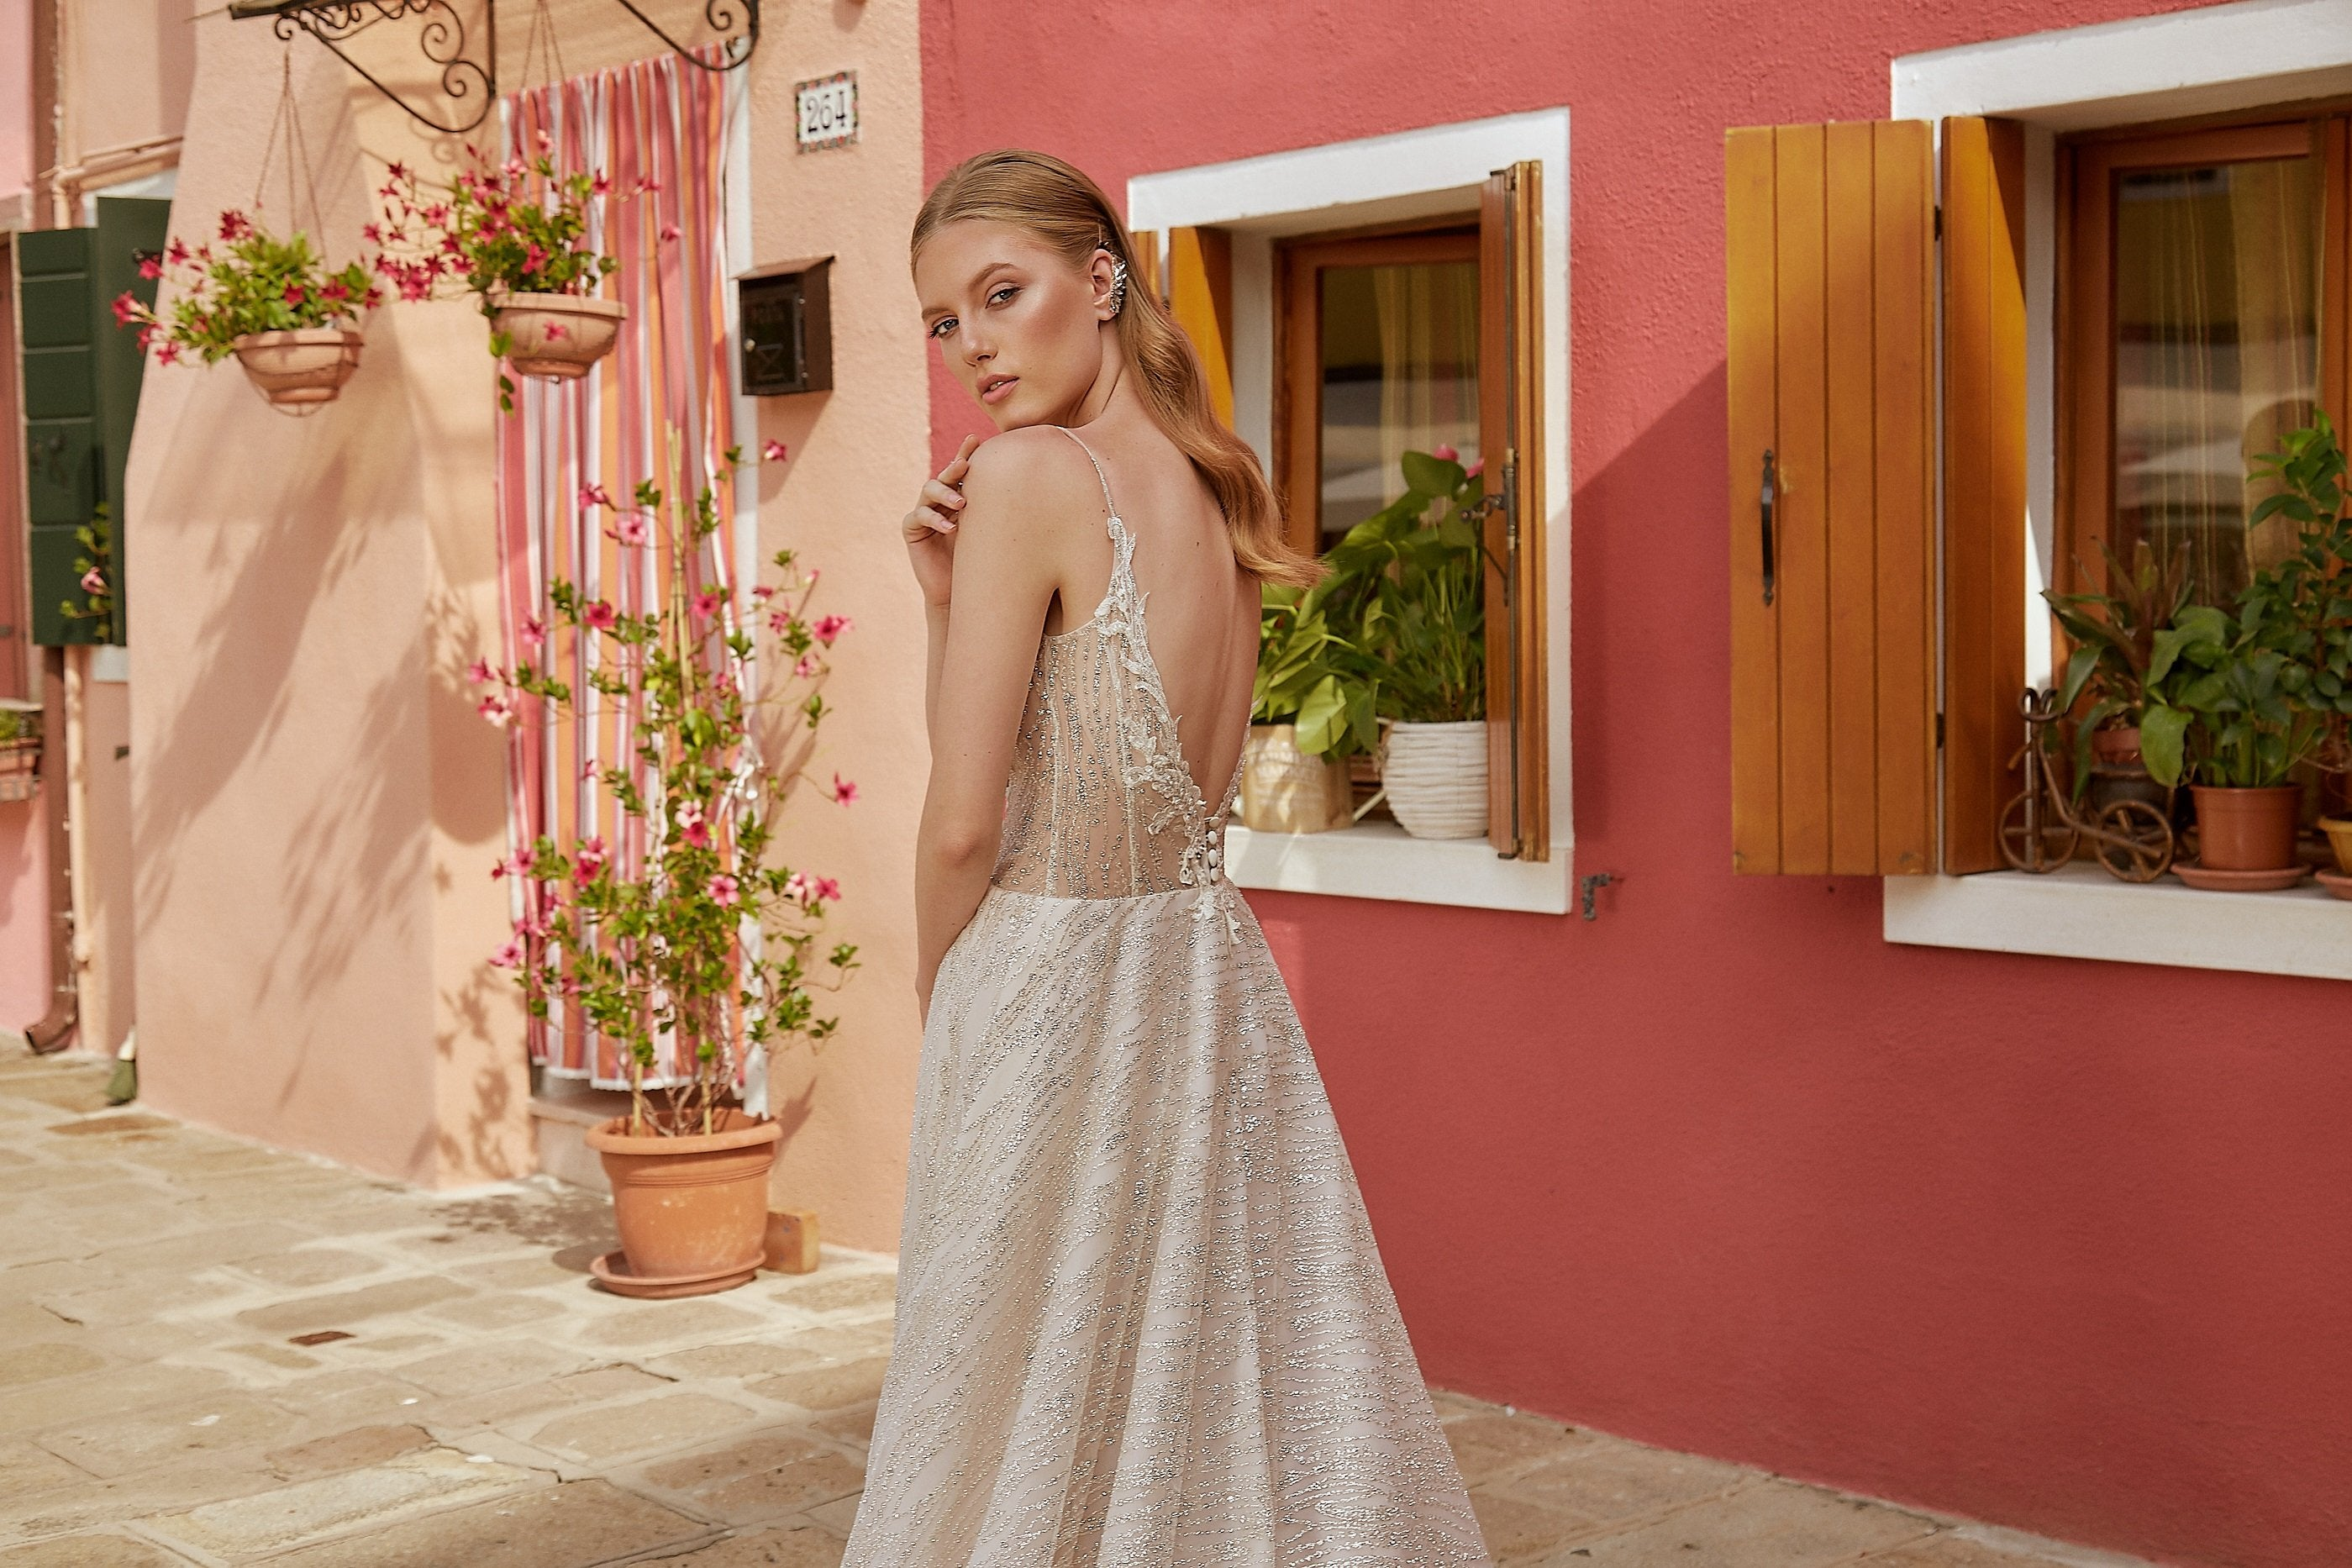 INES - SPARKLING A-LINE WEDDING DRESS WITH SWEETHEART NECKLINE